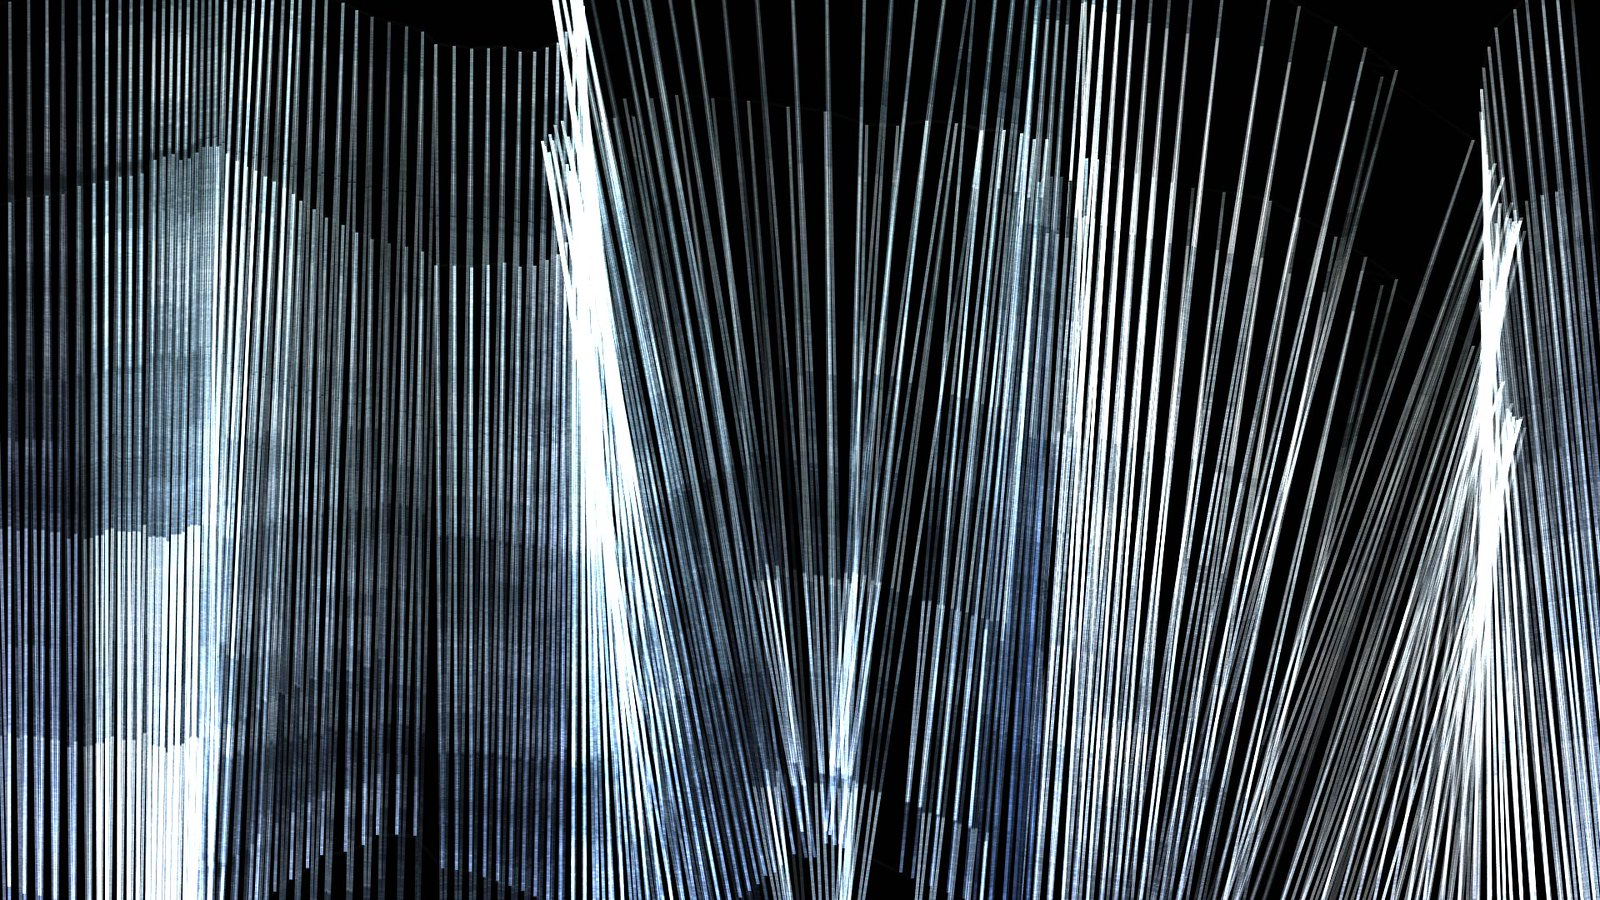 CrippledSymmetry_05 All Lines